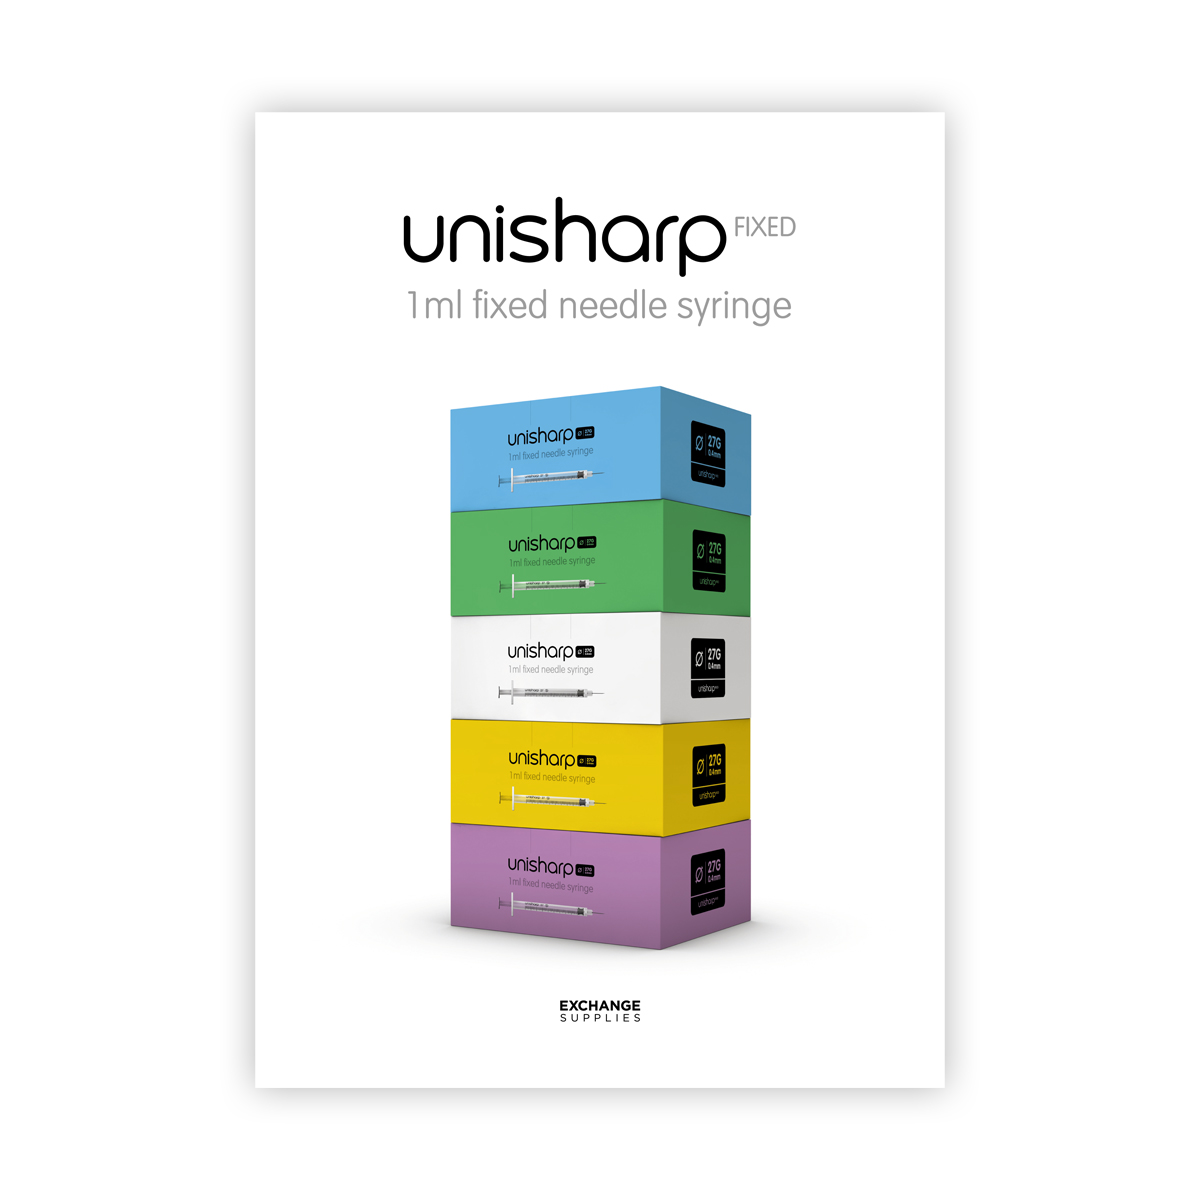 Unisharp 1ml syringe: an introduction